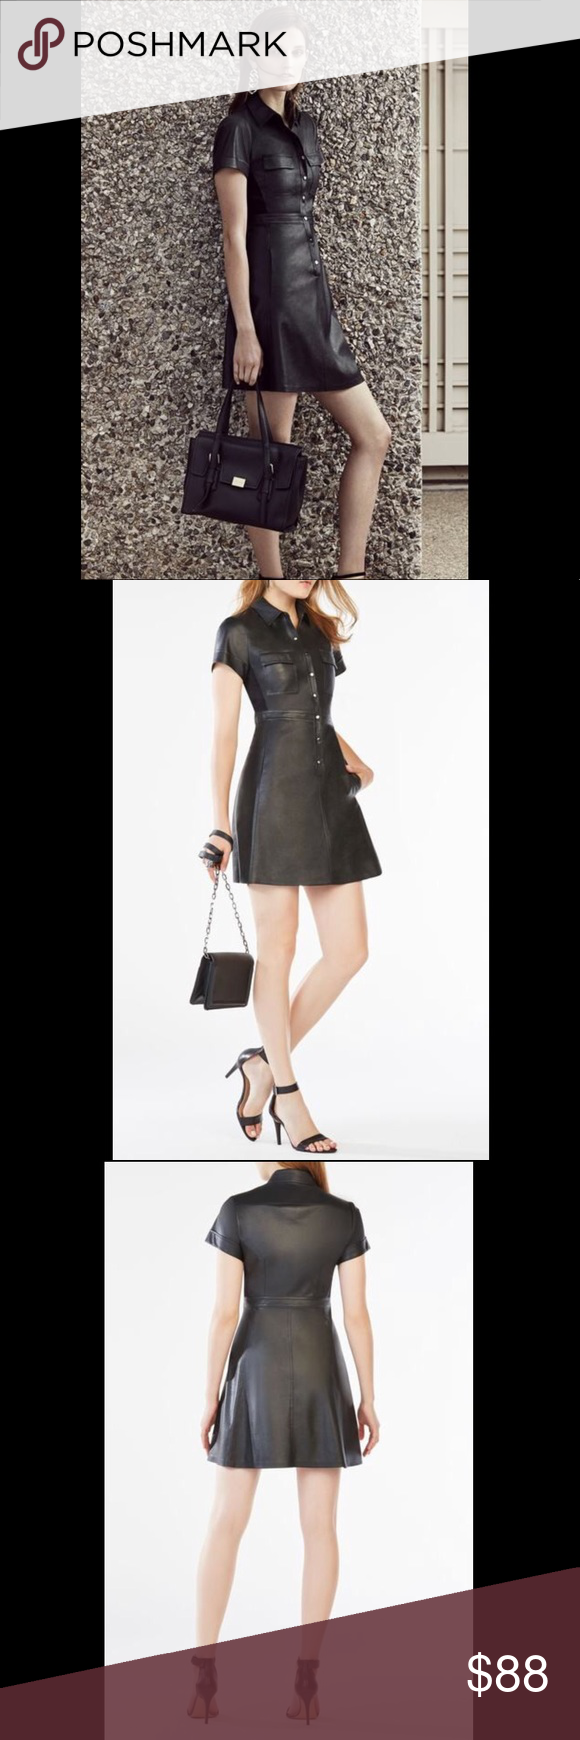 eb1de02b525 BCBG MAXAZRIA Stephana Faux-Leather Shirt Dress The shirt dress gets a Rock   N